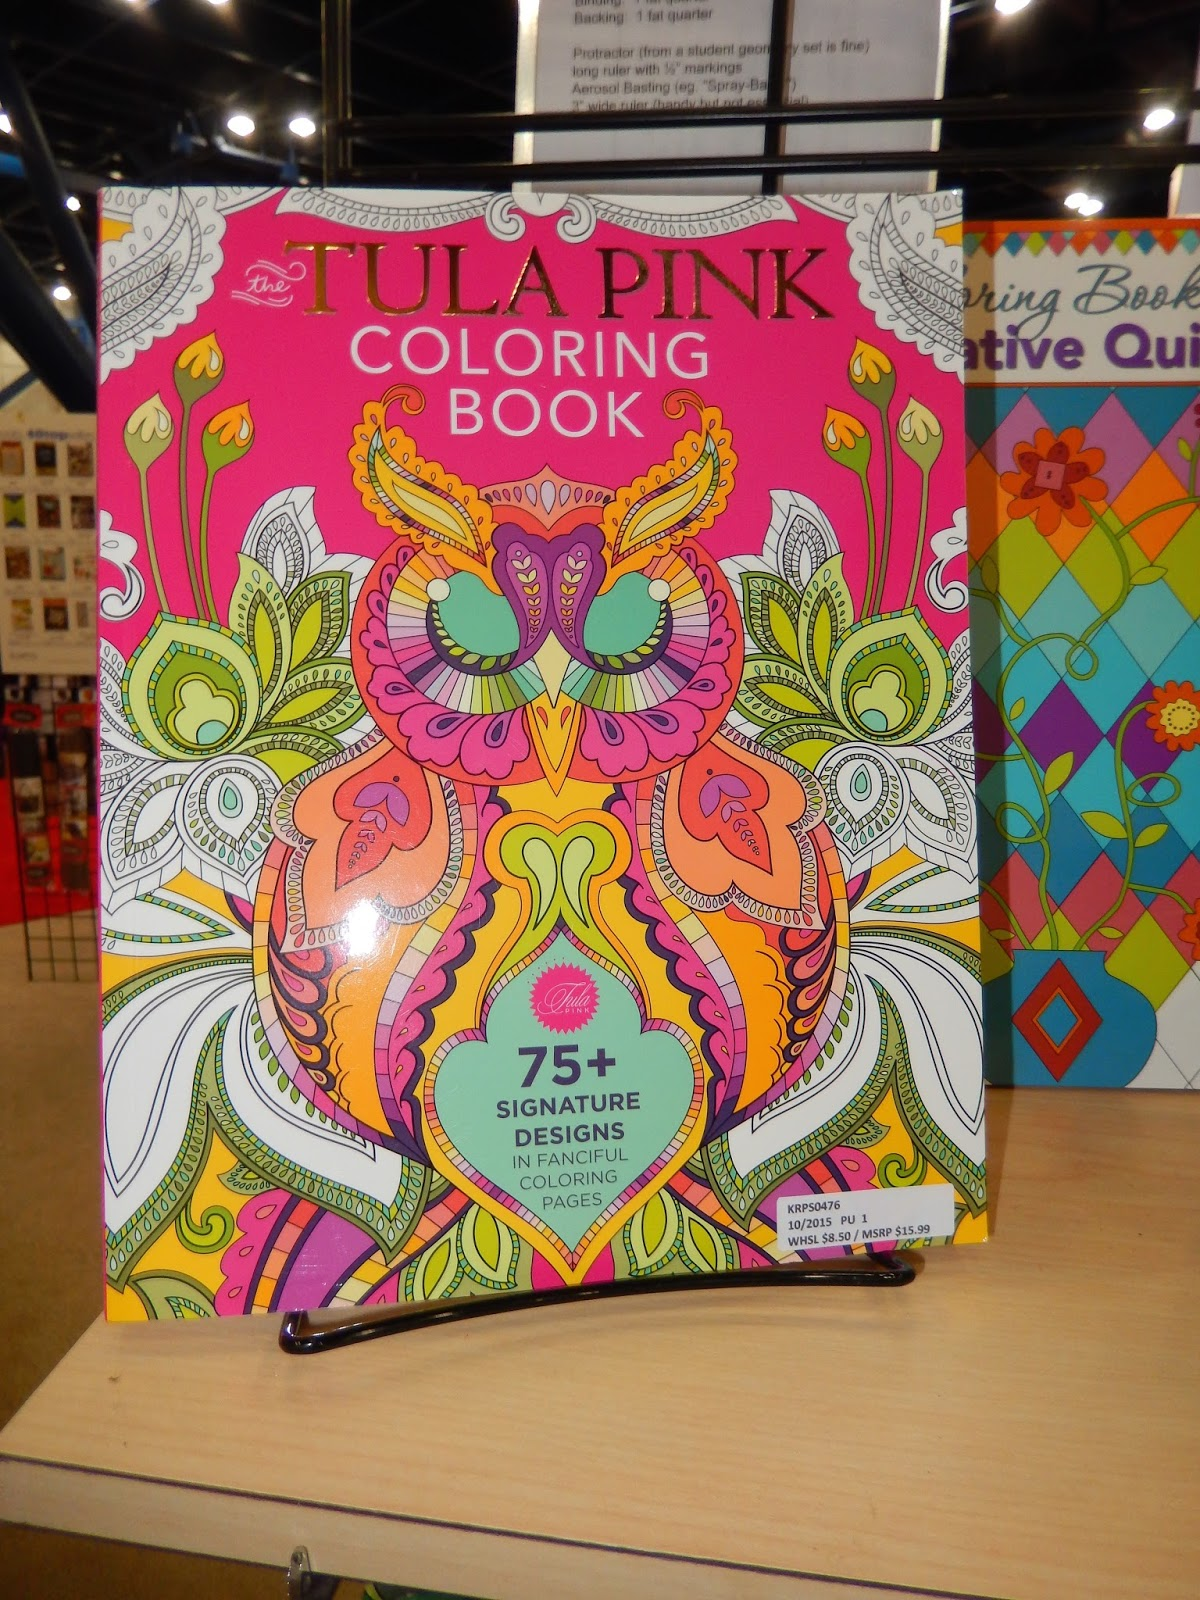 The tula pink coloring book - Fabric Connoisseurs Will Appreciate The Cotton Steel And Tula Pink Coloring Books